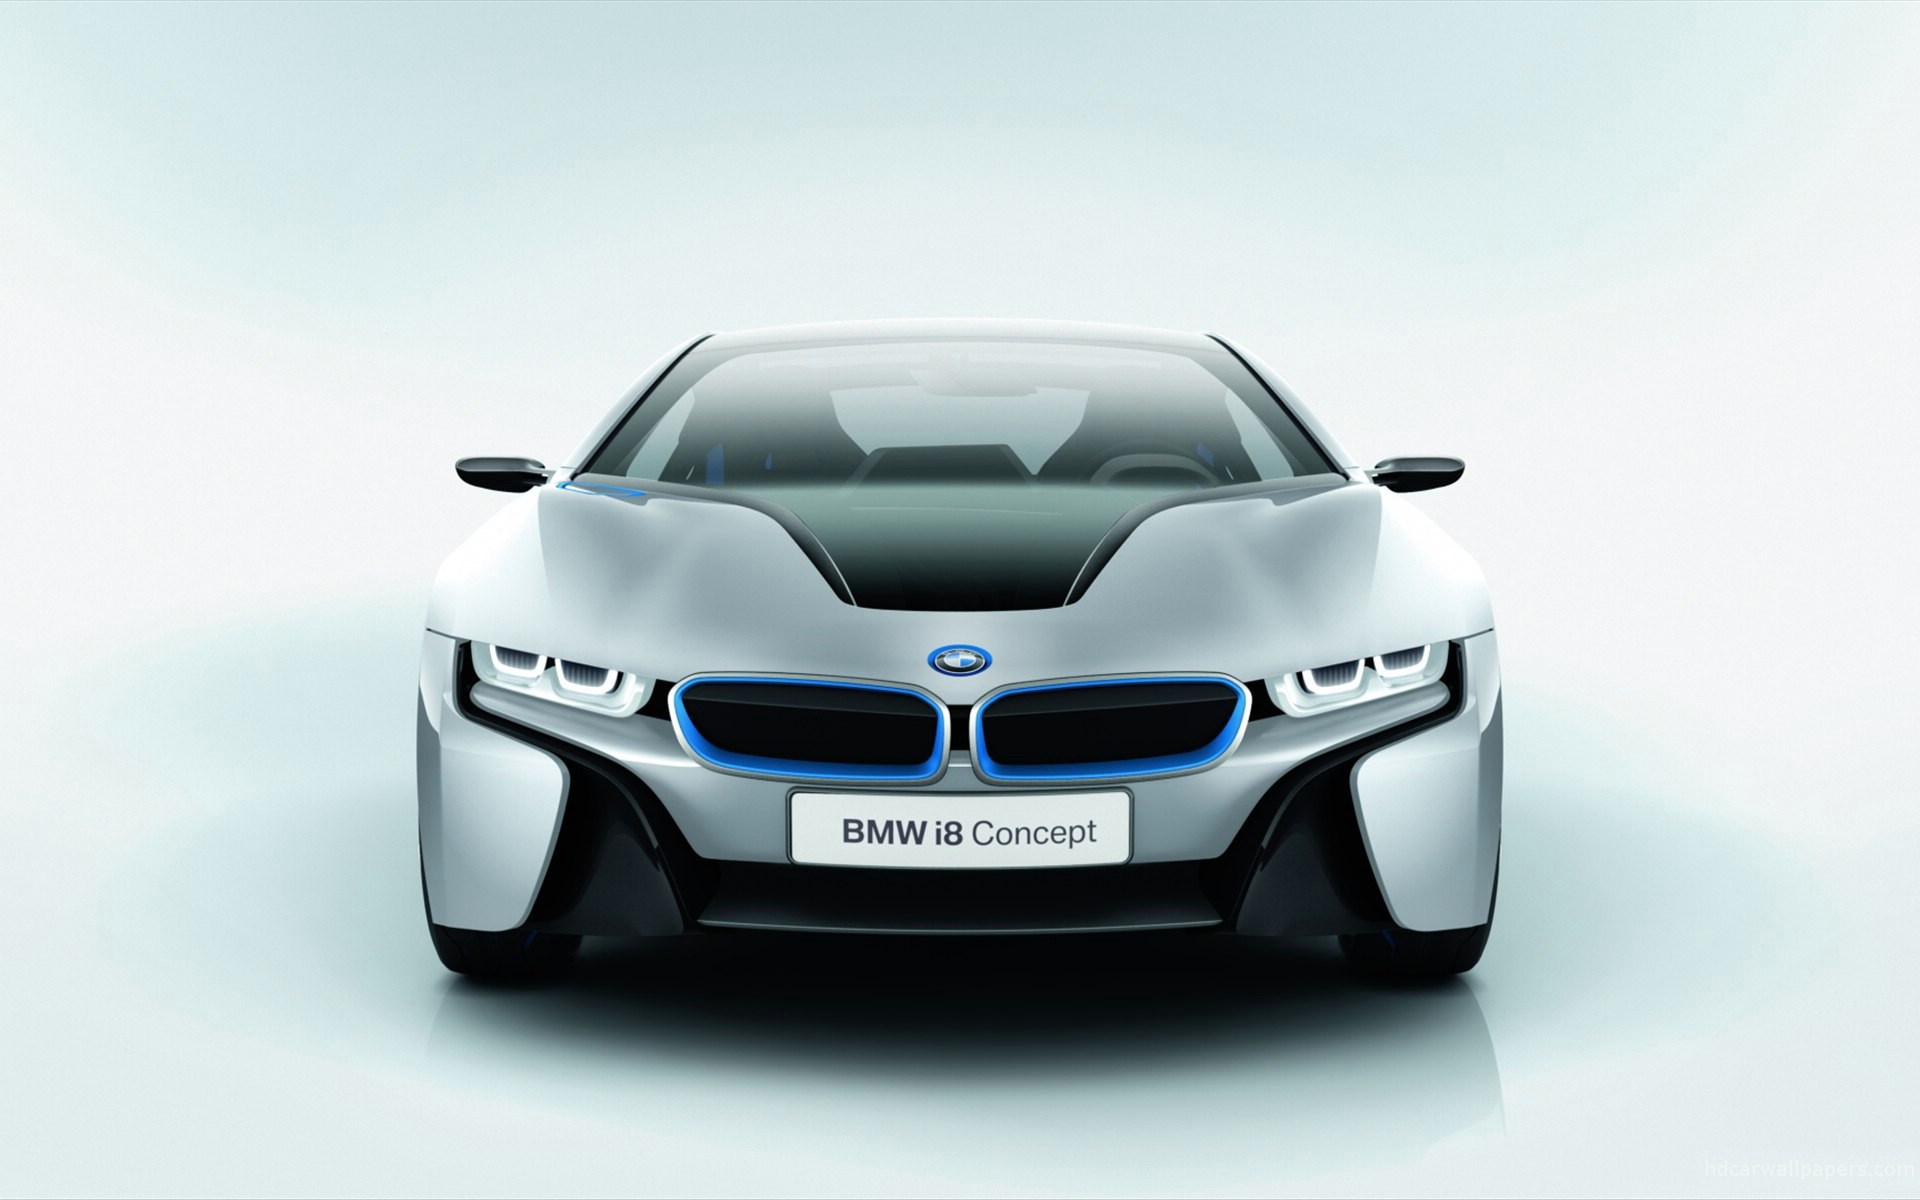 bmw i8 concept car with Cool HD Wallpapers 1080p | Free Automotive Car ...